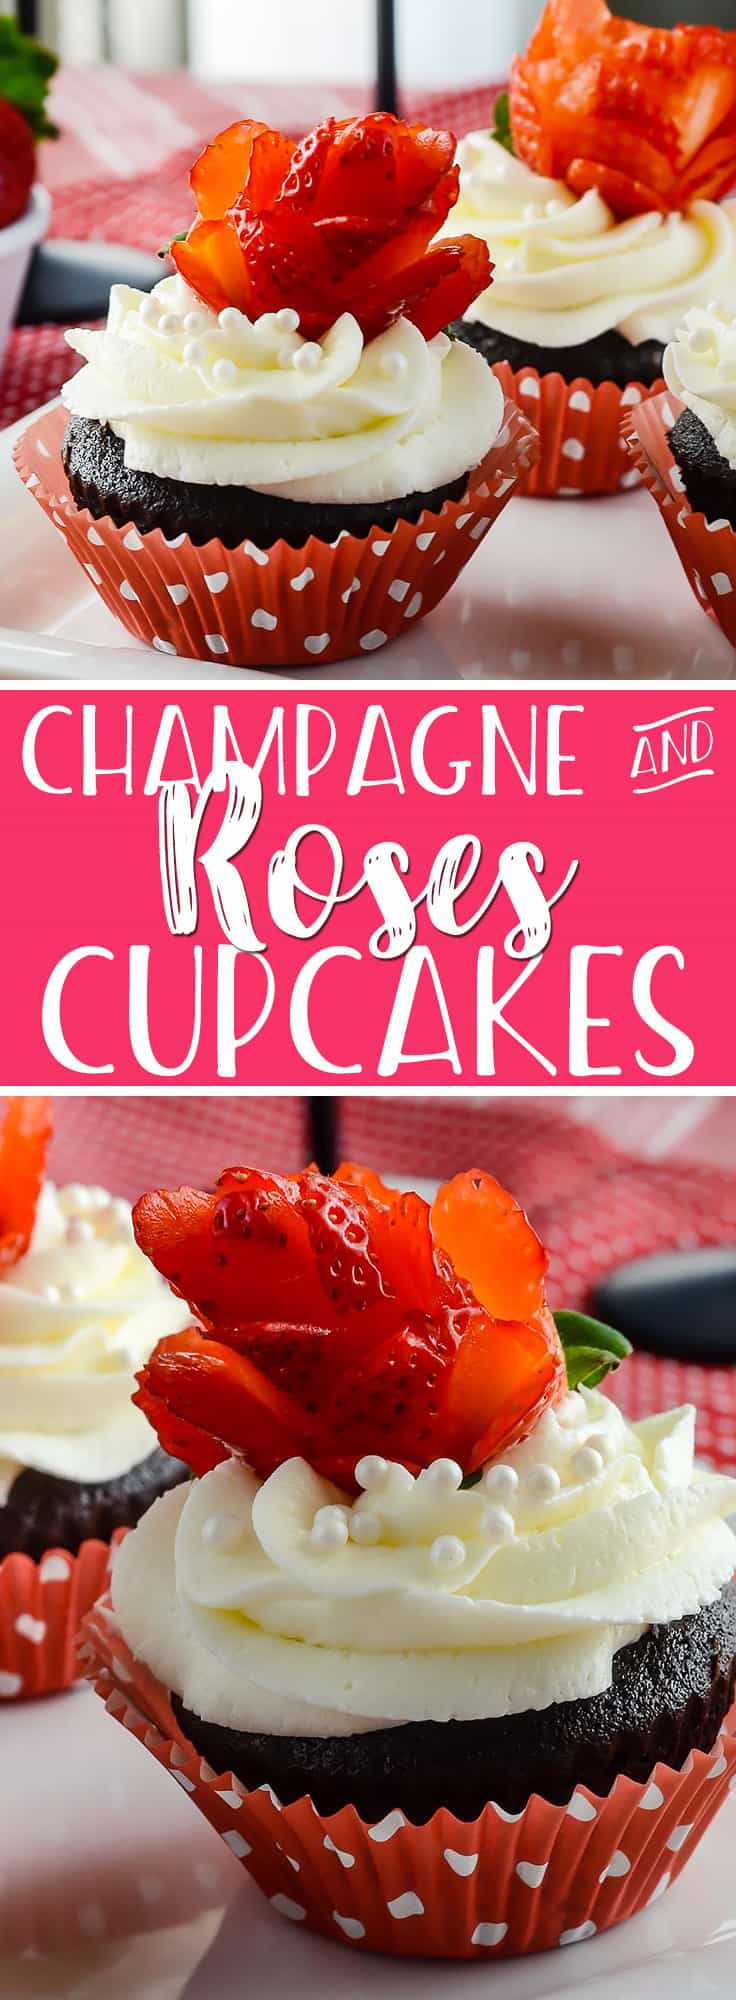 Valentine's Day wrapped up in a sweet dessert: dark chocolate rose cupcakes, strawberries, and bubbly are what make these Champagne and Roses Cupcakes come to life!